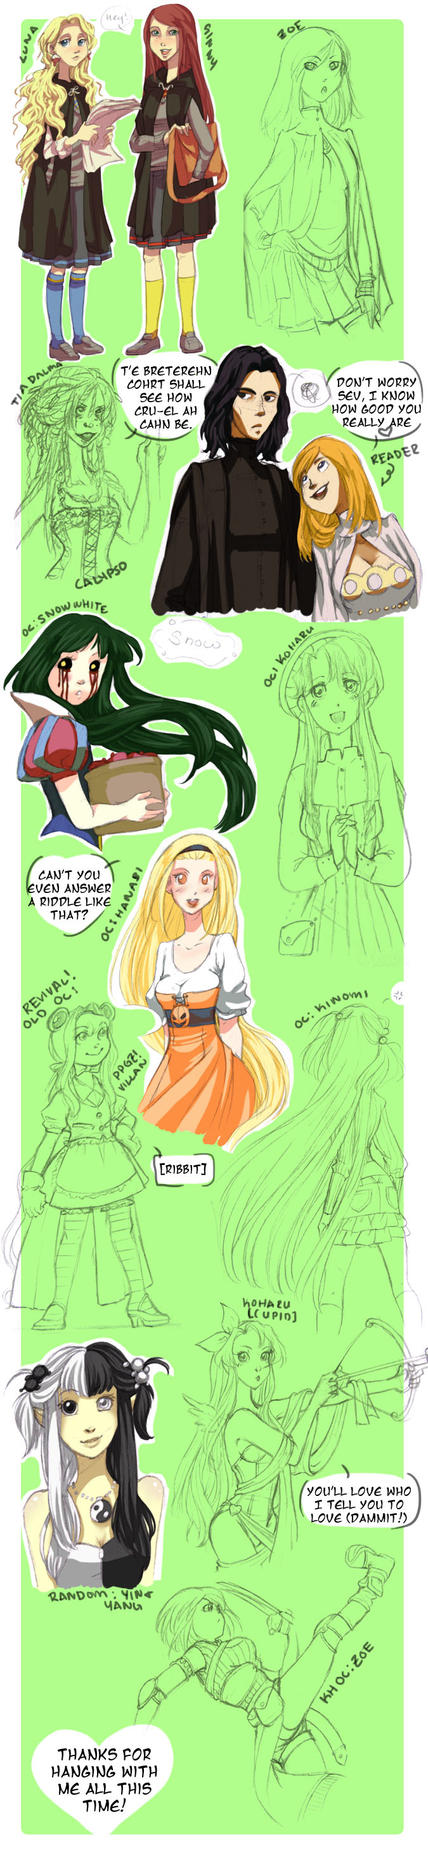 Spring 2013 Pt4 by ZOE-Productions